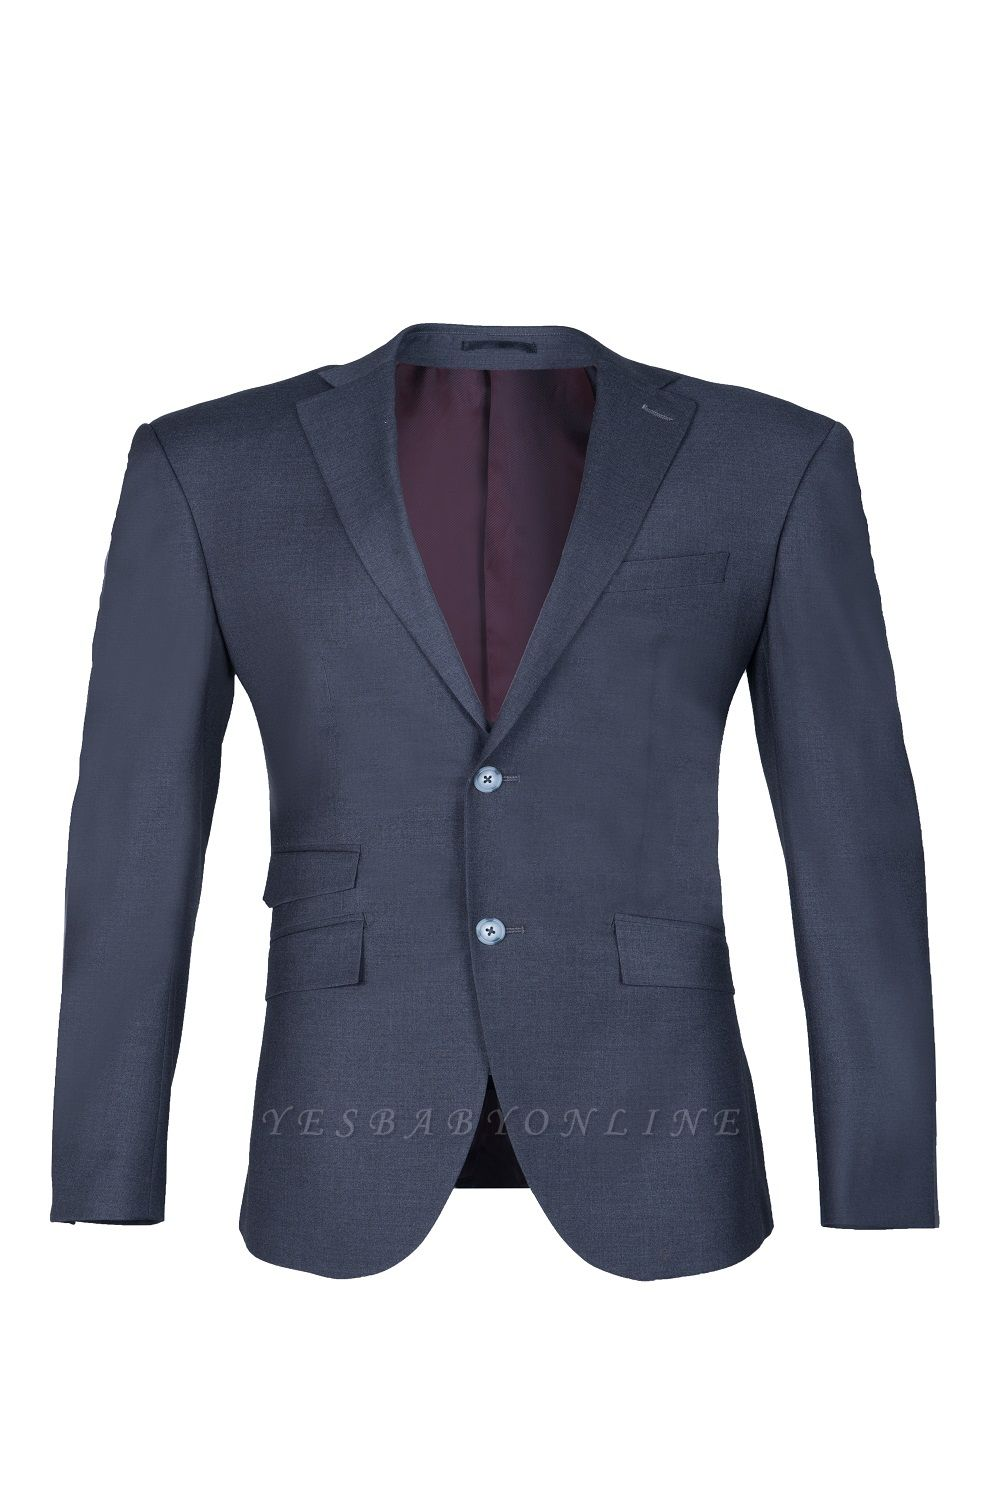 Dark Navy Hot Recommend Popular Peak Lapel Single Breasted Best Men Groomsmen